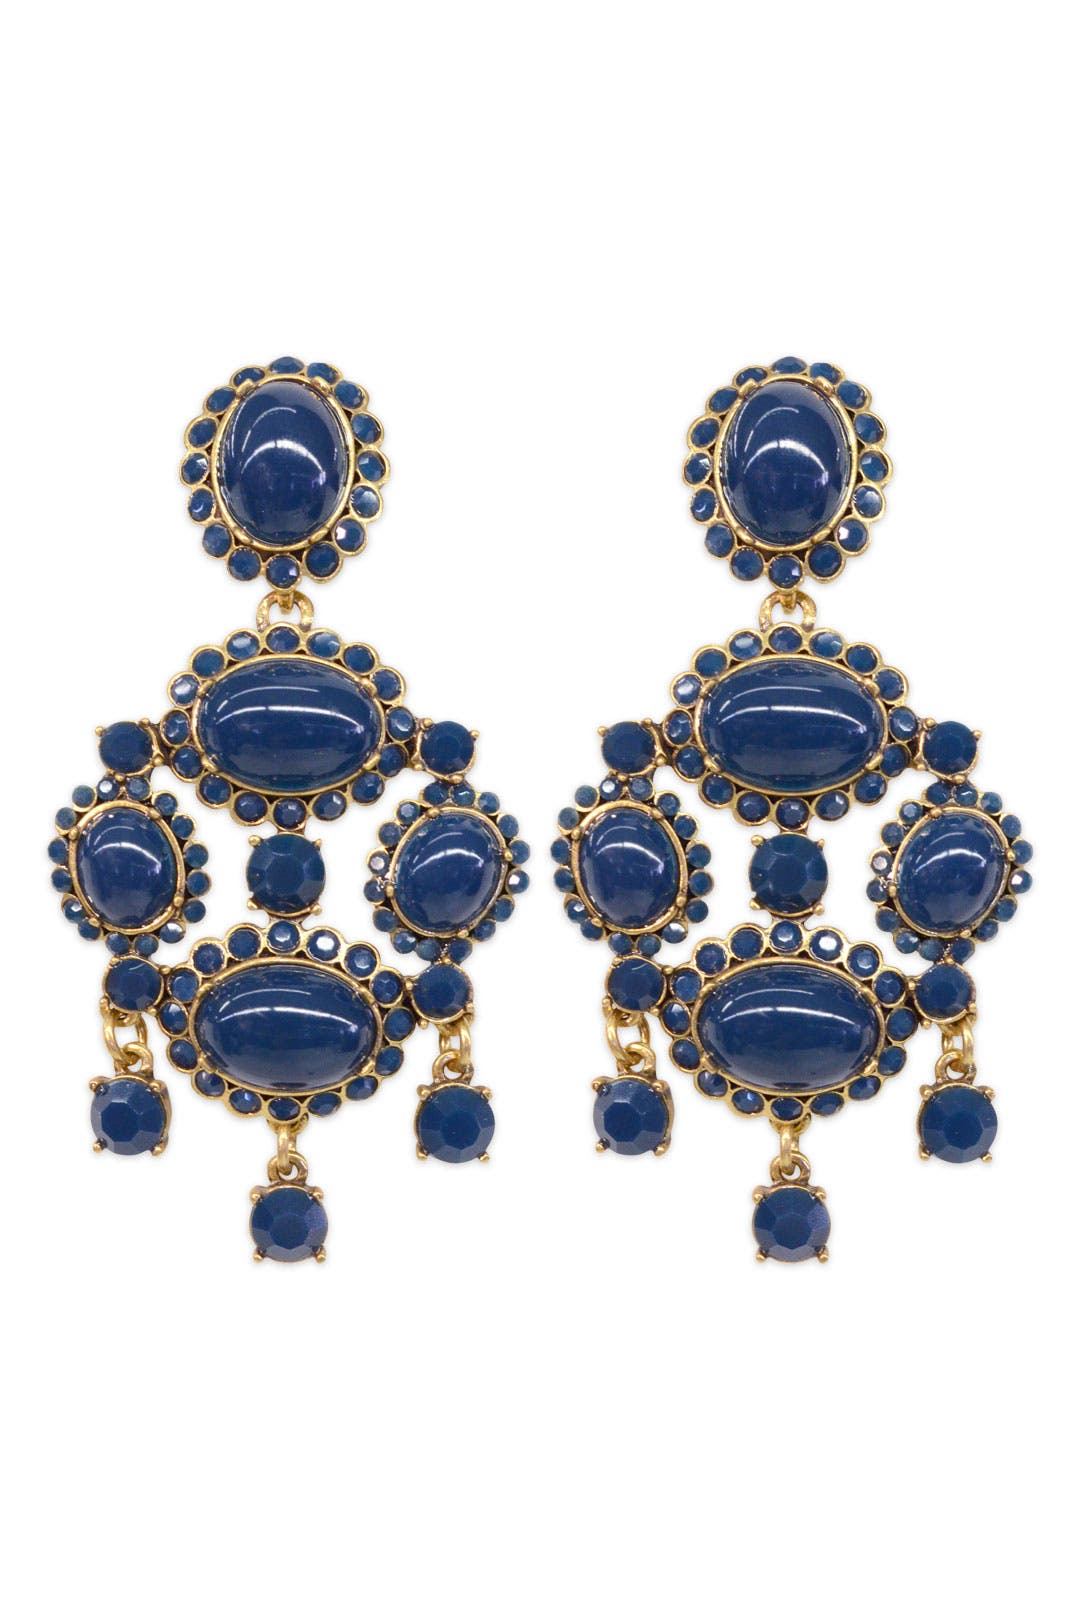 Deep Sea Ornate Earrings by Oscar de la Renta